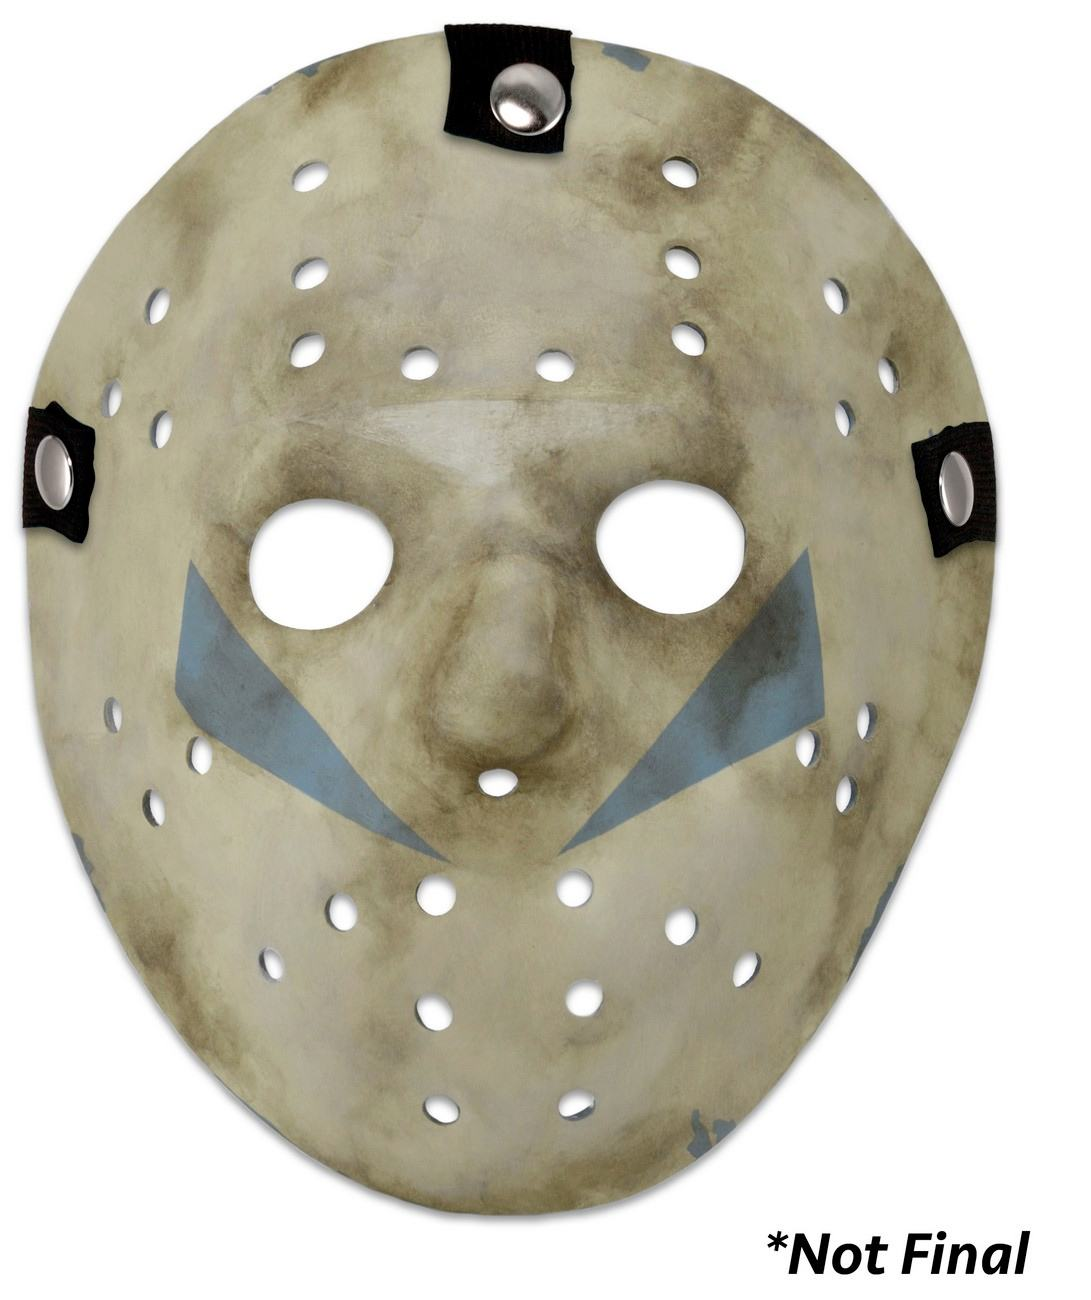 Mascara-Friday-the-13th-Part-5-A-New-Beginning-Jason-Mask-Prop-Replica-04